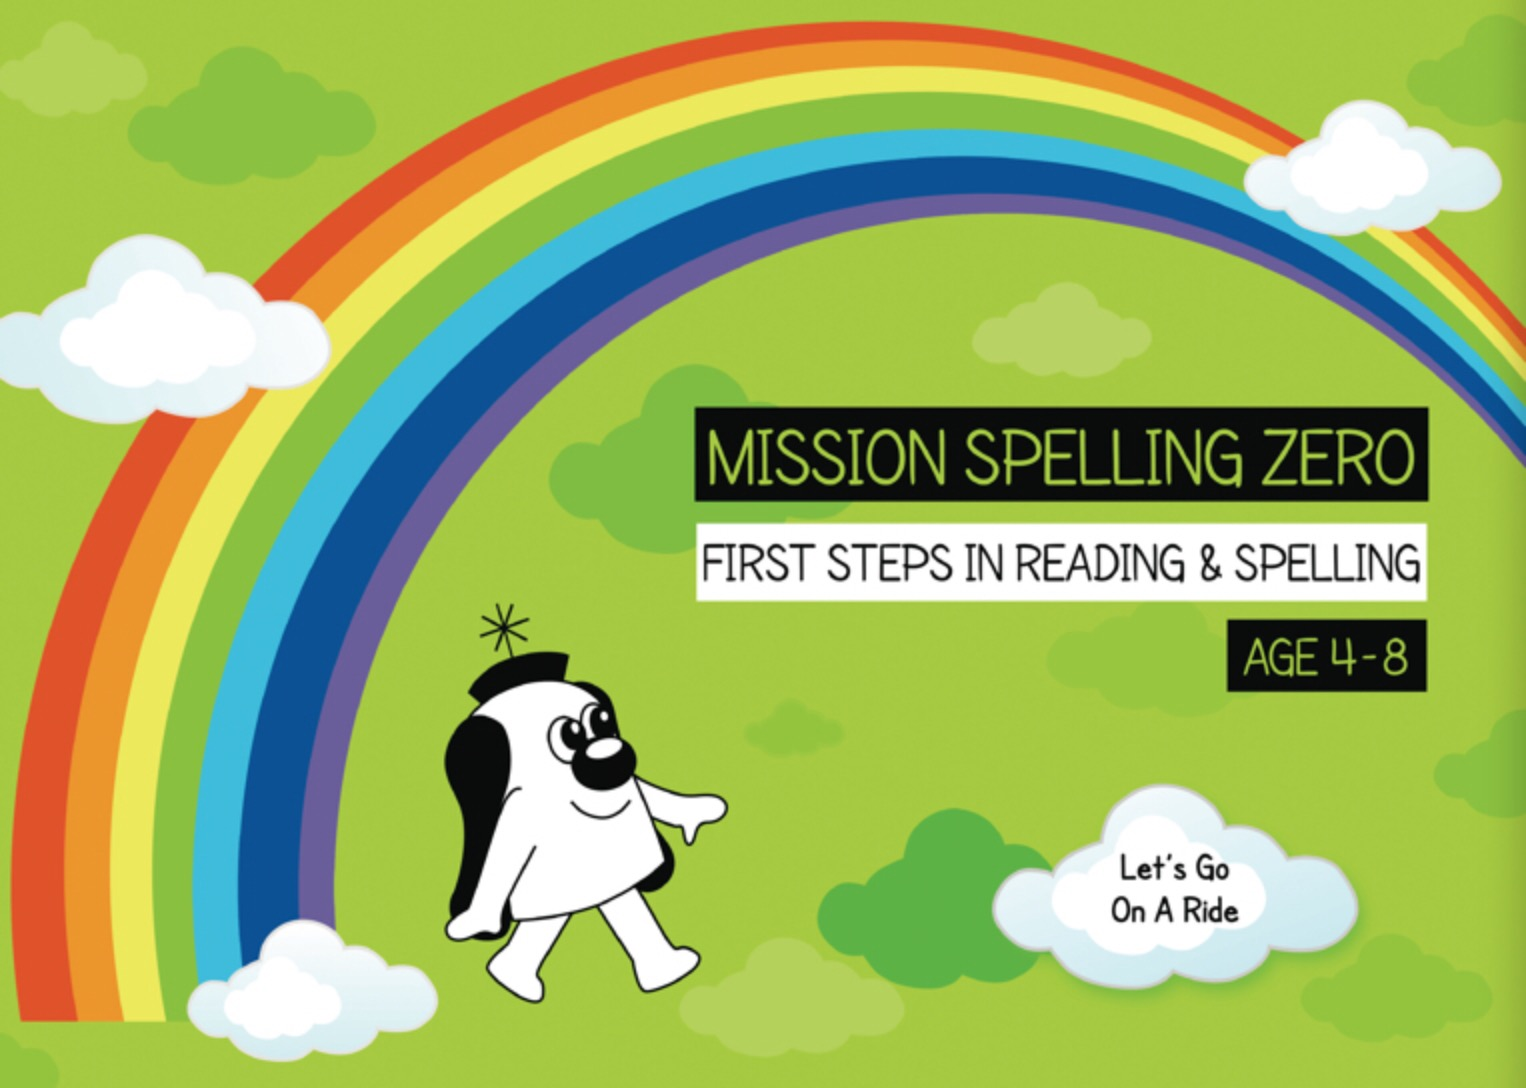 Long Vowel Sounds, Magic E And Vowel Digraphs: Let's Go On A Ride (Print Edition)